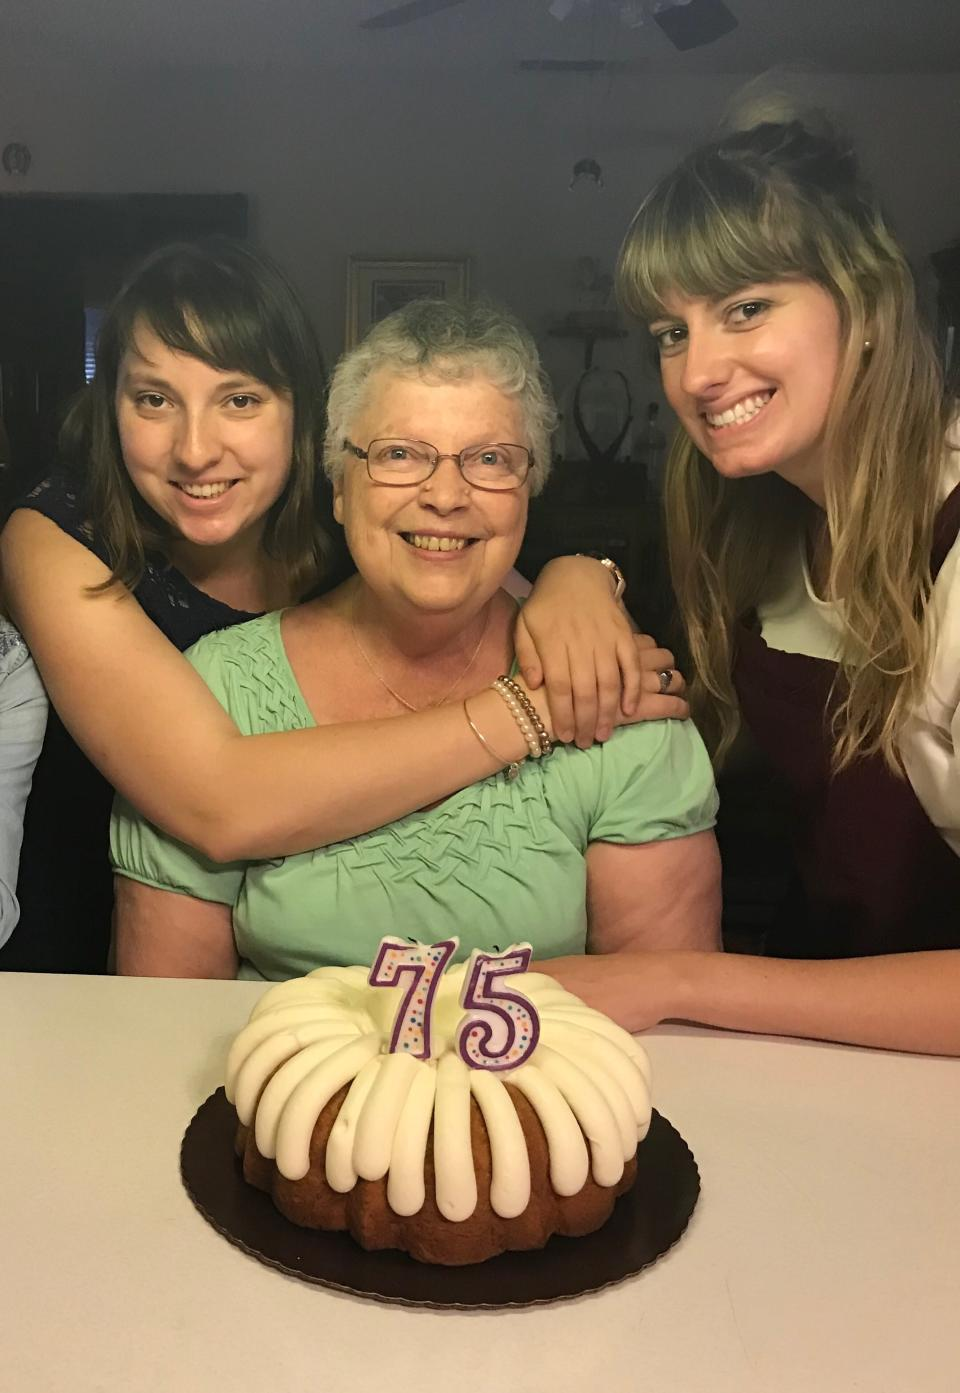 This June 3, 2018 photo shows Megan Hockman, from left, her grandmother Eleanor Raguse and sister Kayla Hockman posing with a birthday cake for Raguse in Fontana, Calif. The Hockmans plan a painting party with a remote brunch on Raguse's lawn as she paints and munches from her porch on Mother's Day. Isolation due to the coronavirus outbreak has led mothers and offspring to find creative ways to celebrate. (Lori Hockman via AP)